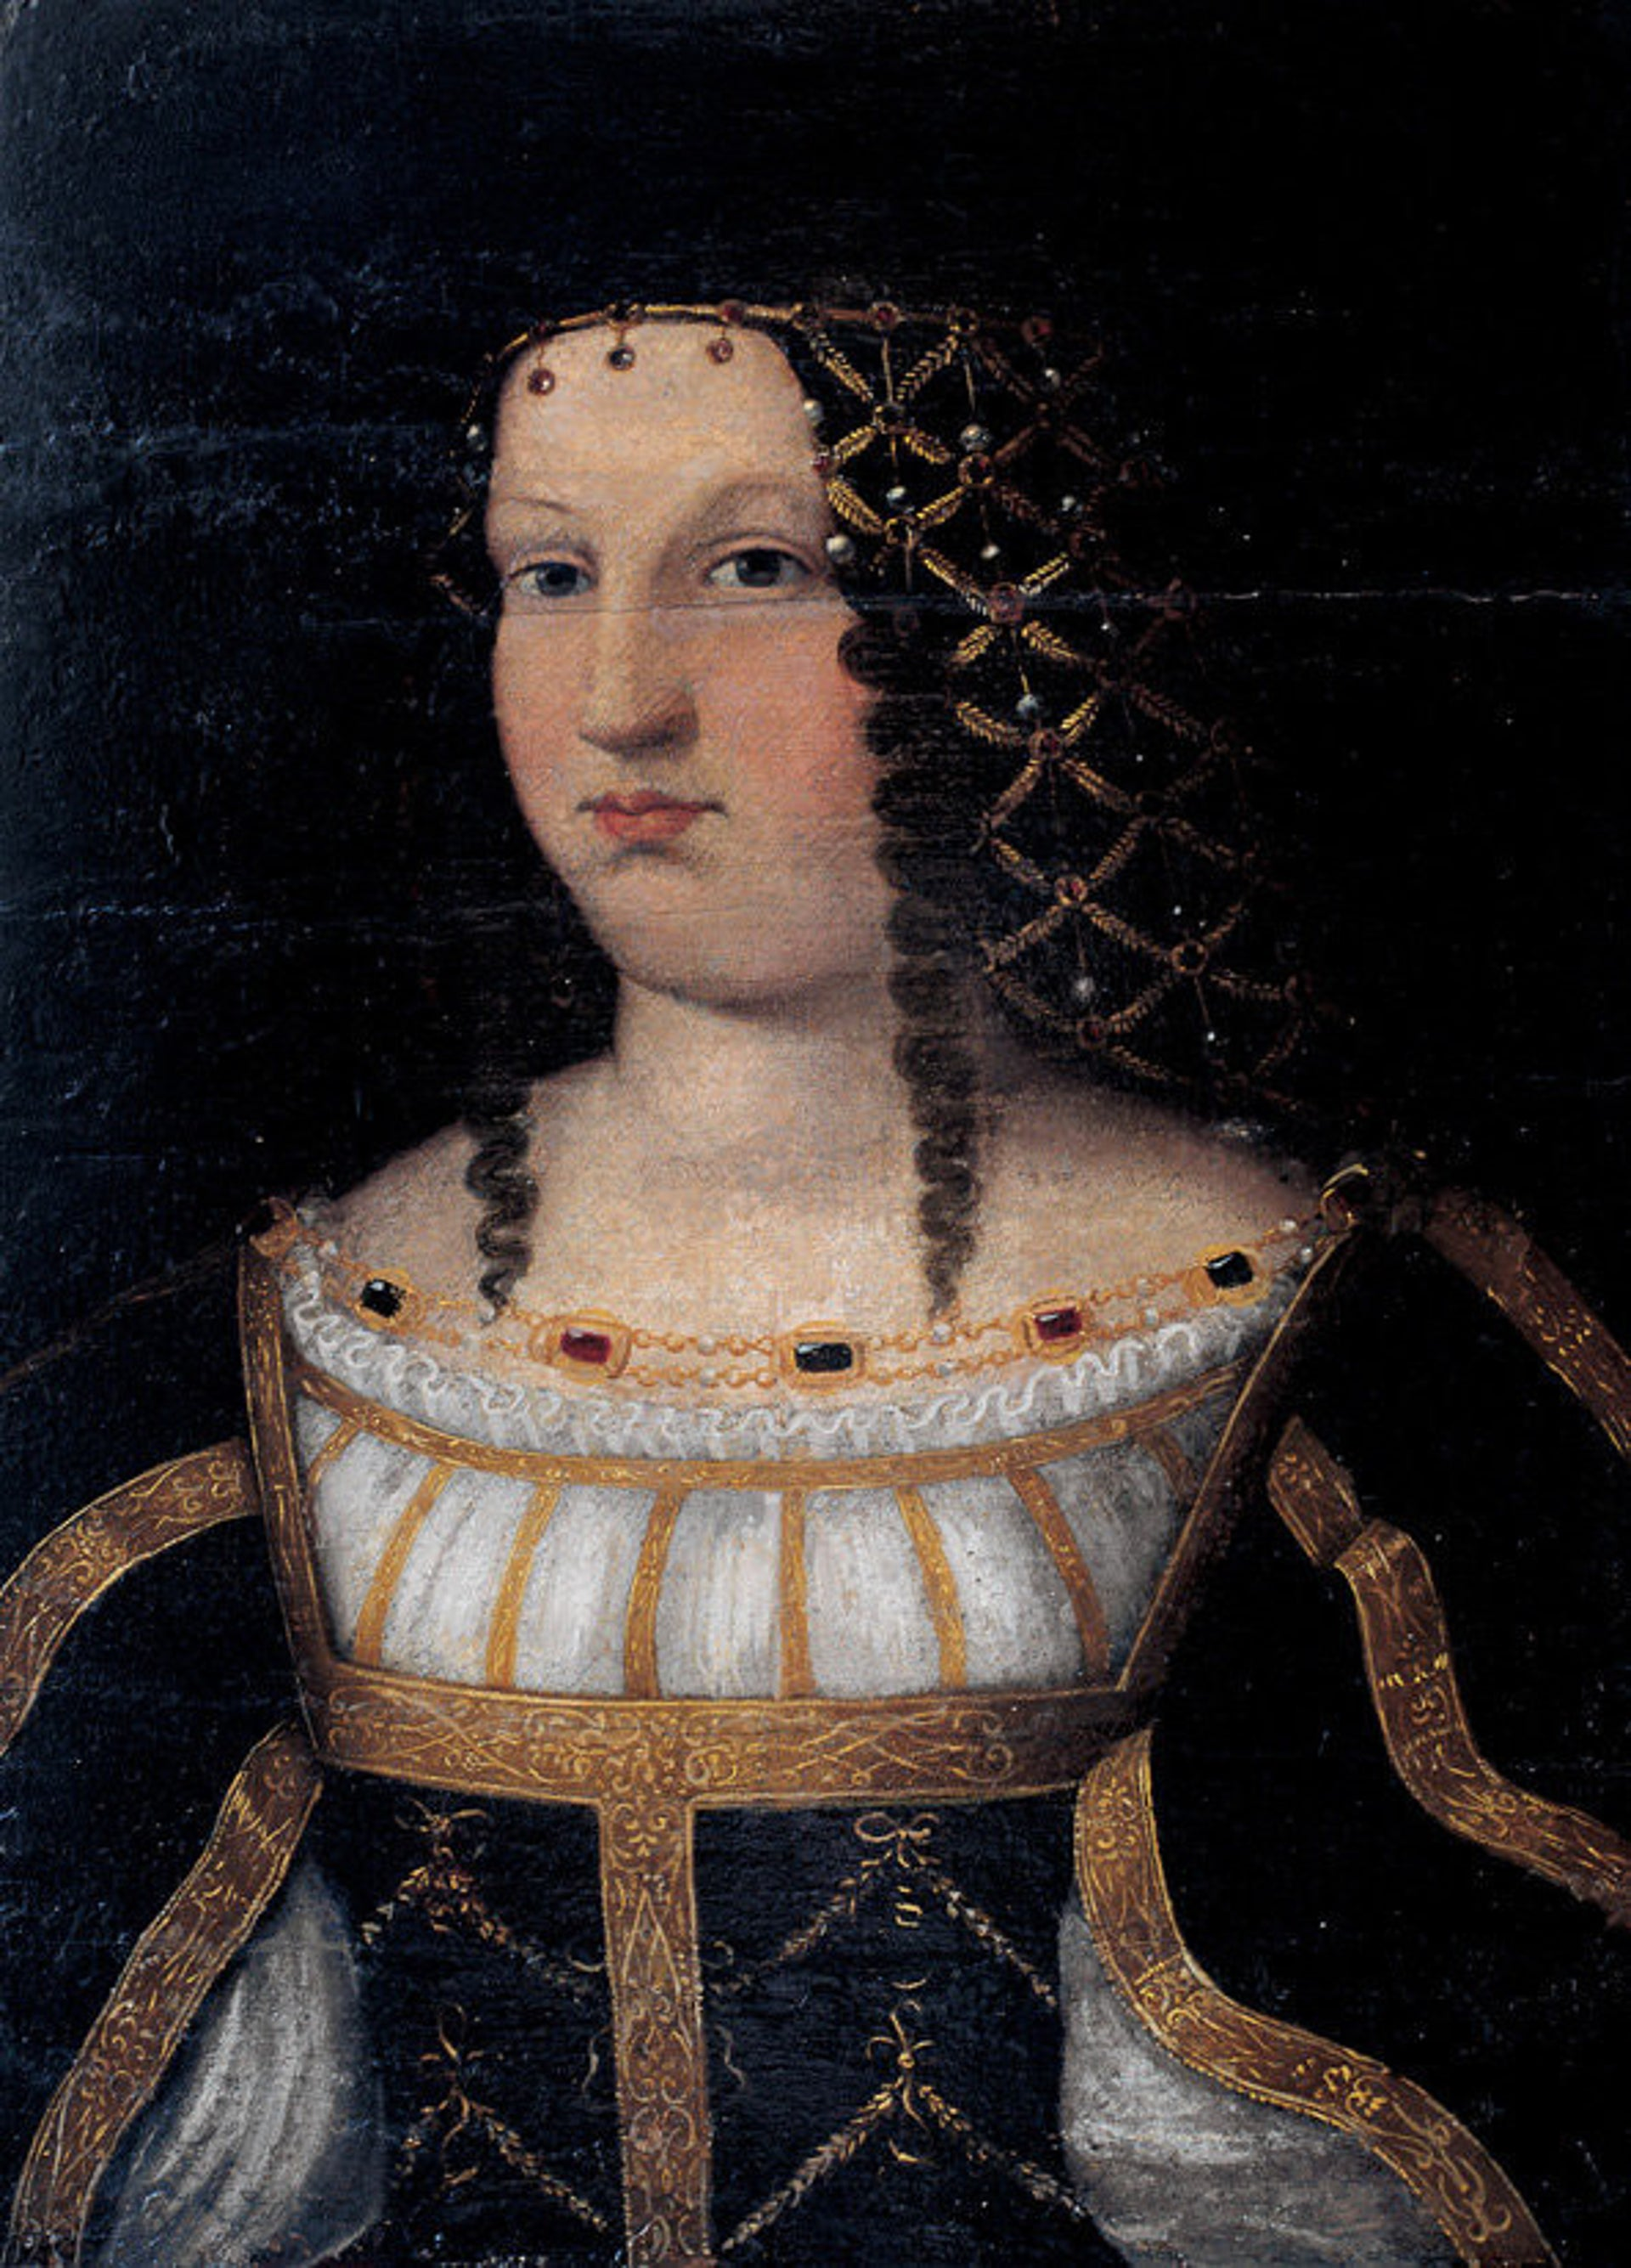 Lucrezia Borgia painted by Bartolomeo Veneto. As Duchess of Ferrara she employed Salomone da Sesso as the court goldsmith.